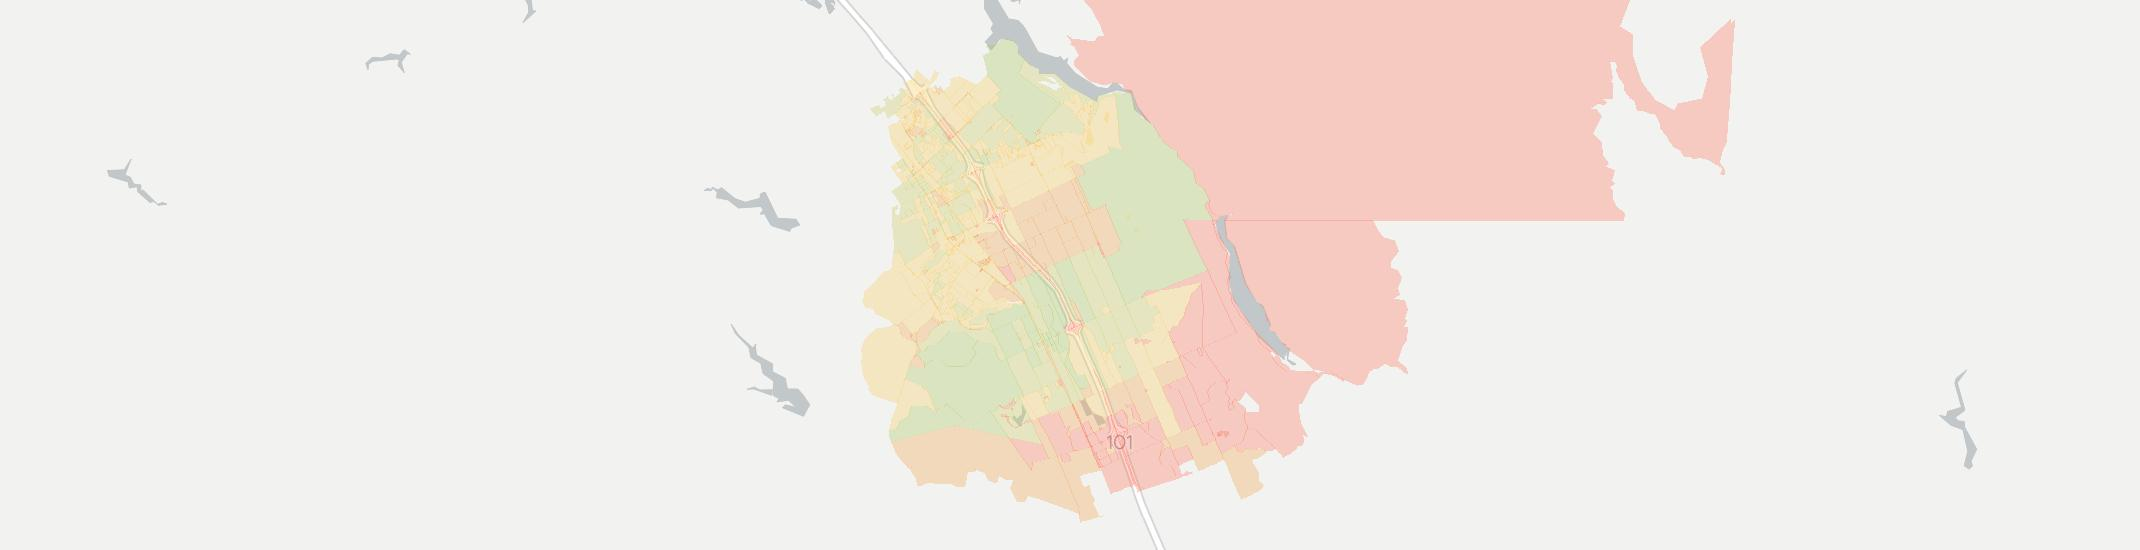 San Martin Internet Competition Map. Click for interactive map.